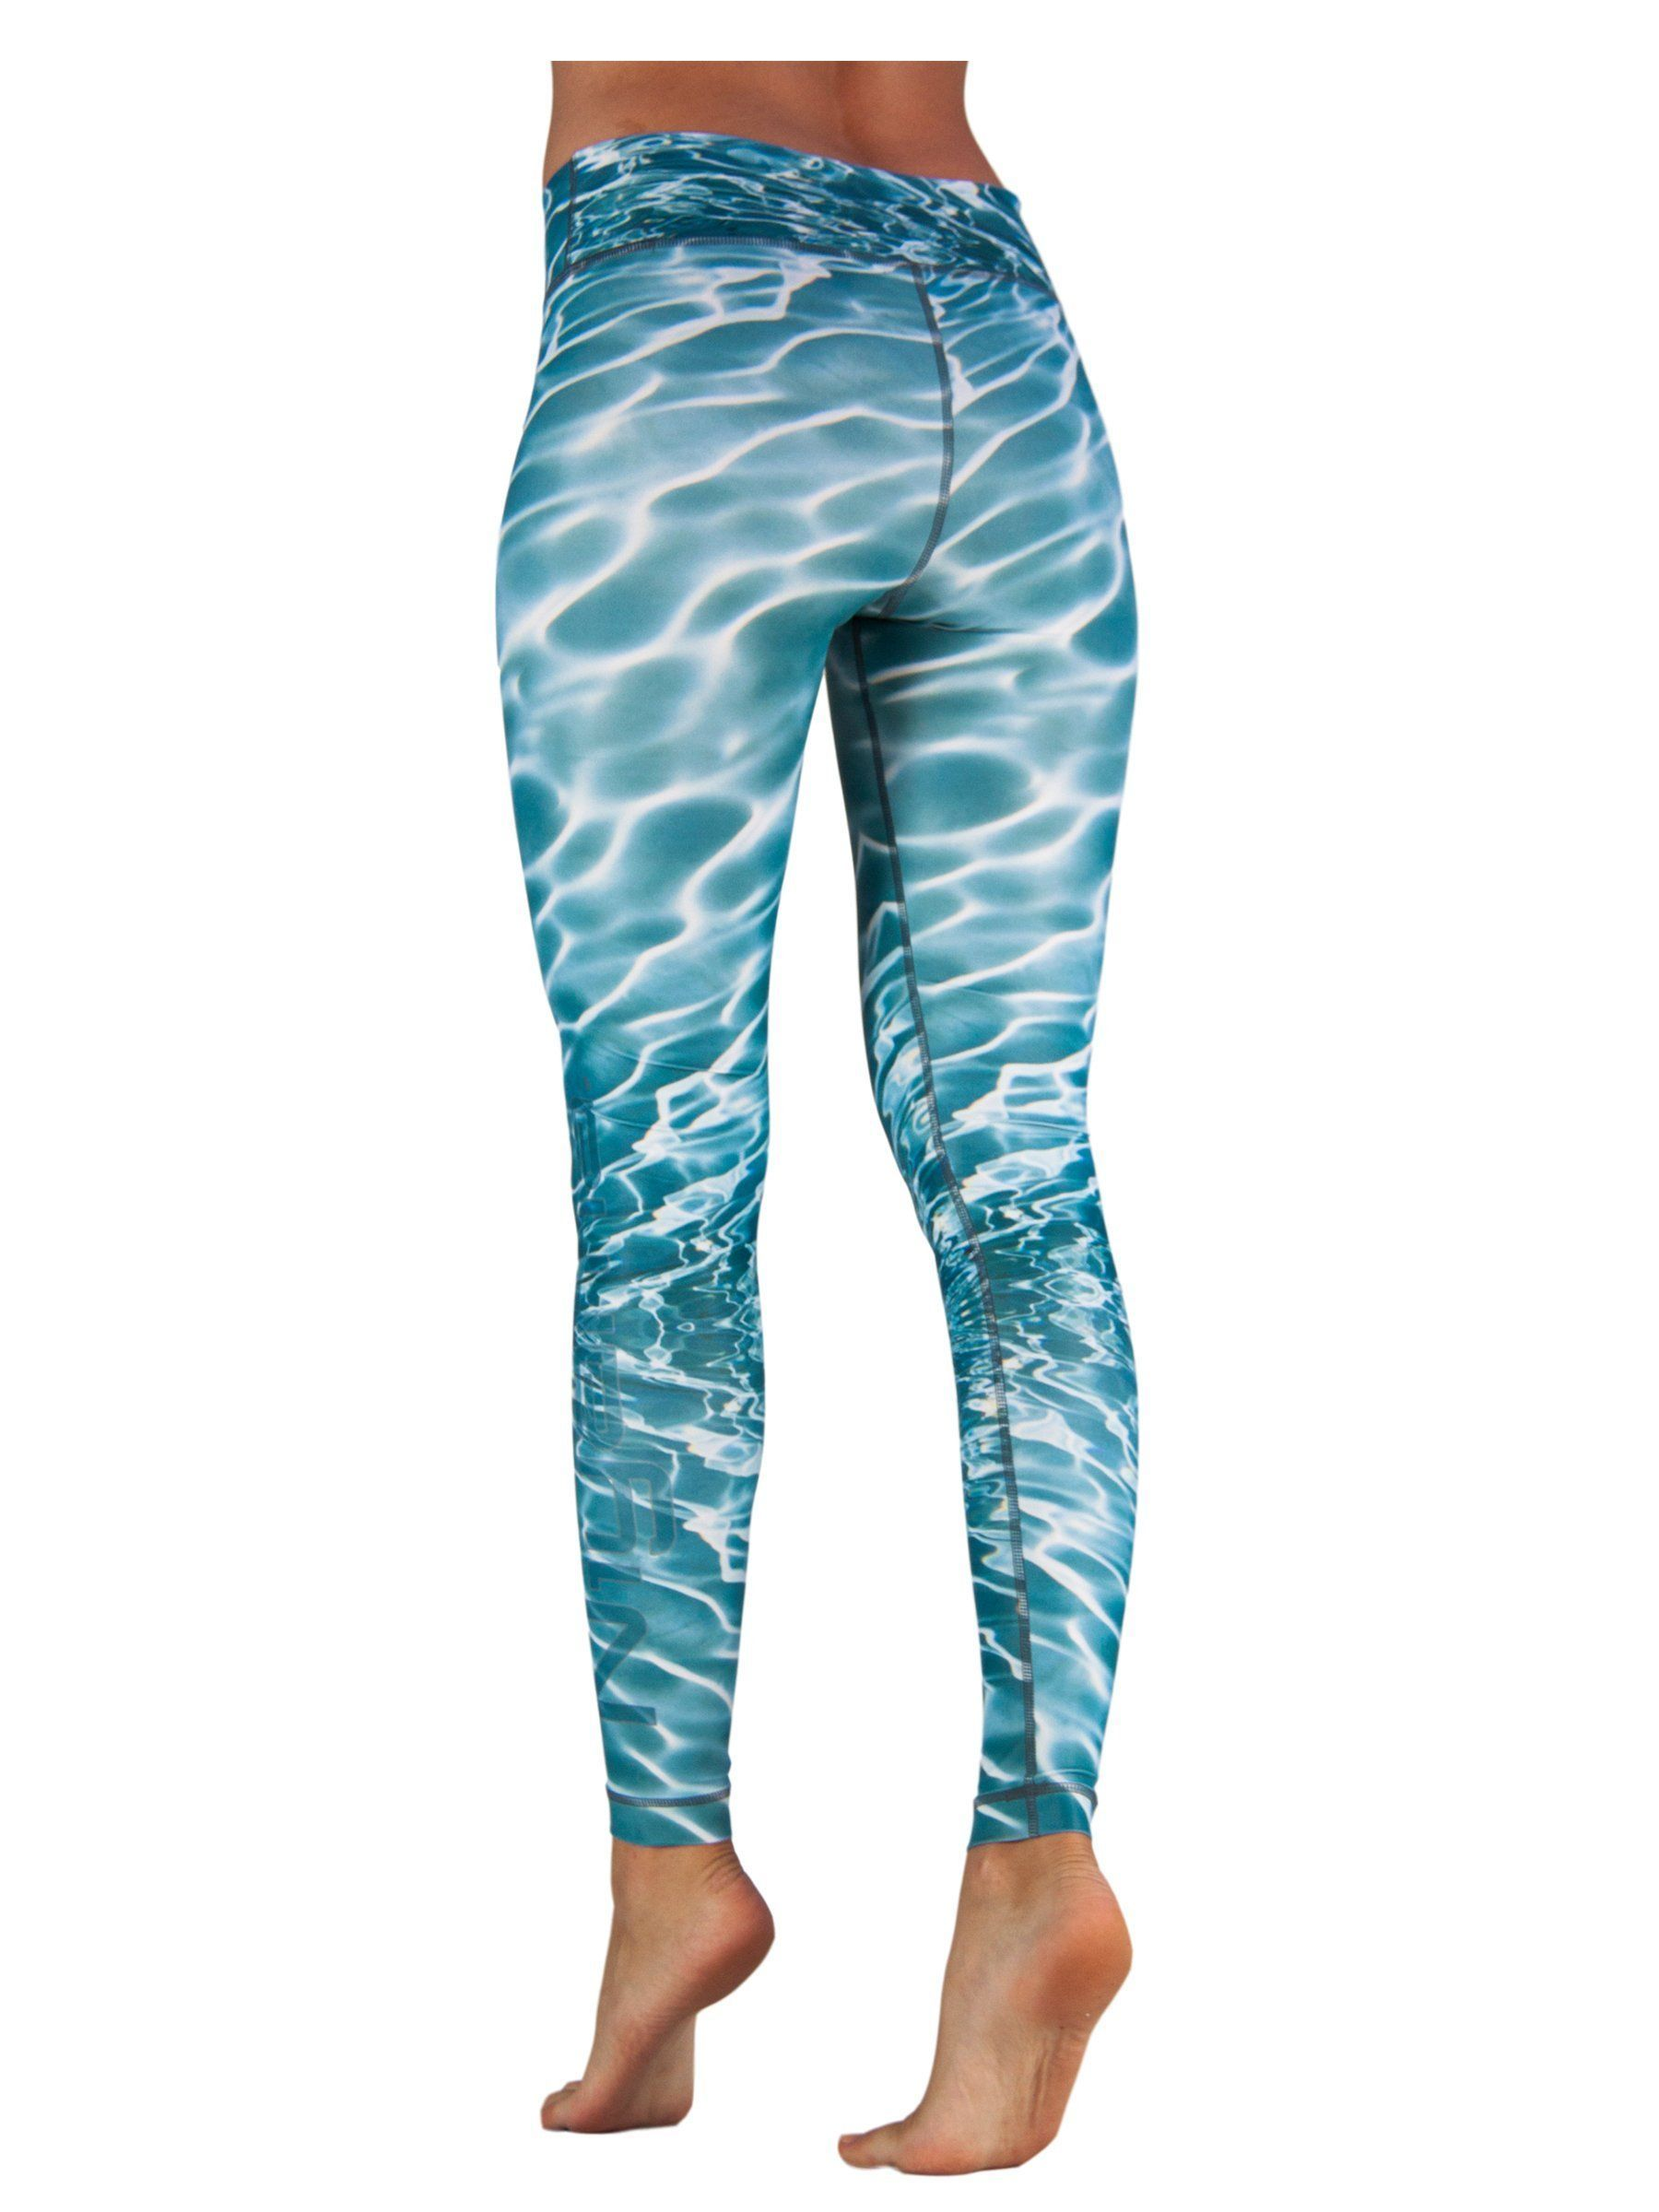 Aquarius by Niyama - High Quality, , Yoga Legging for Movement Artists.